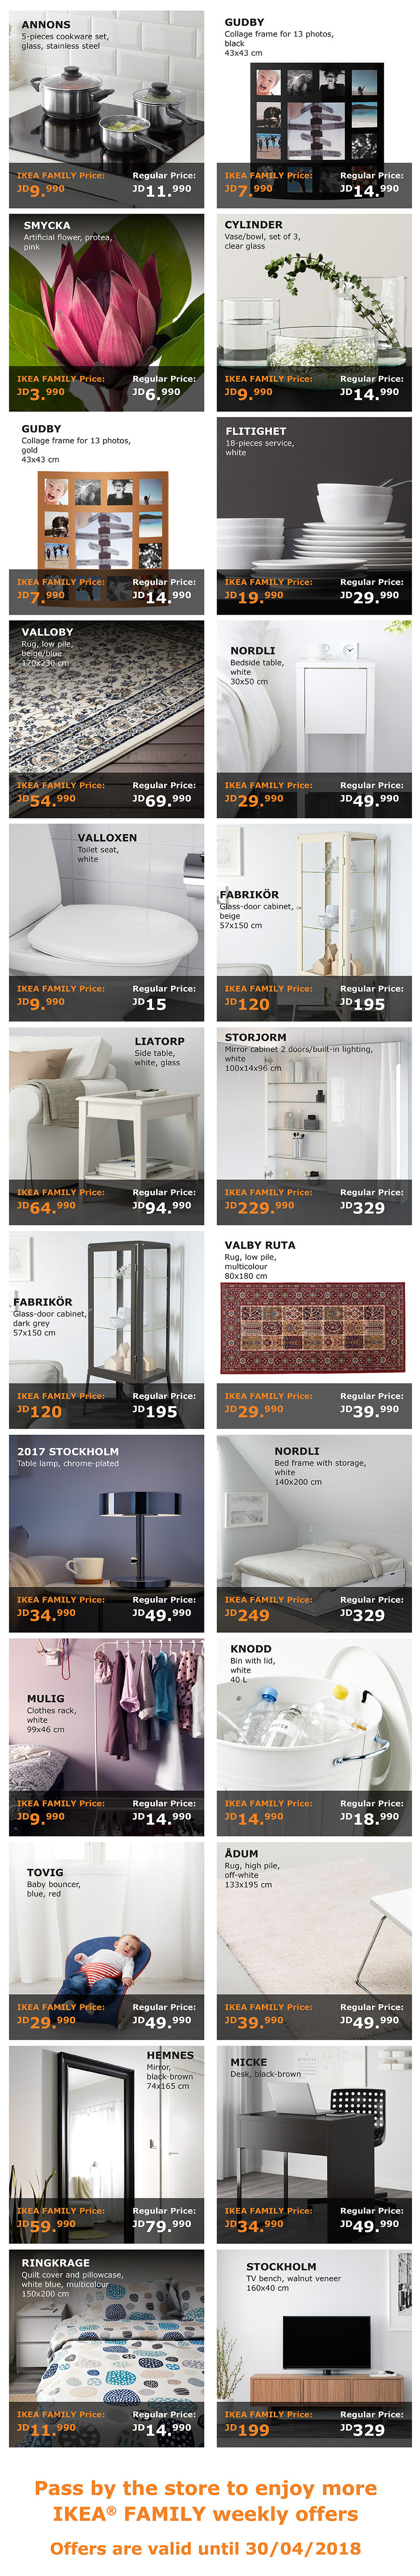 IKEA FAMILY april offers 2018